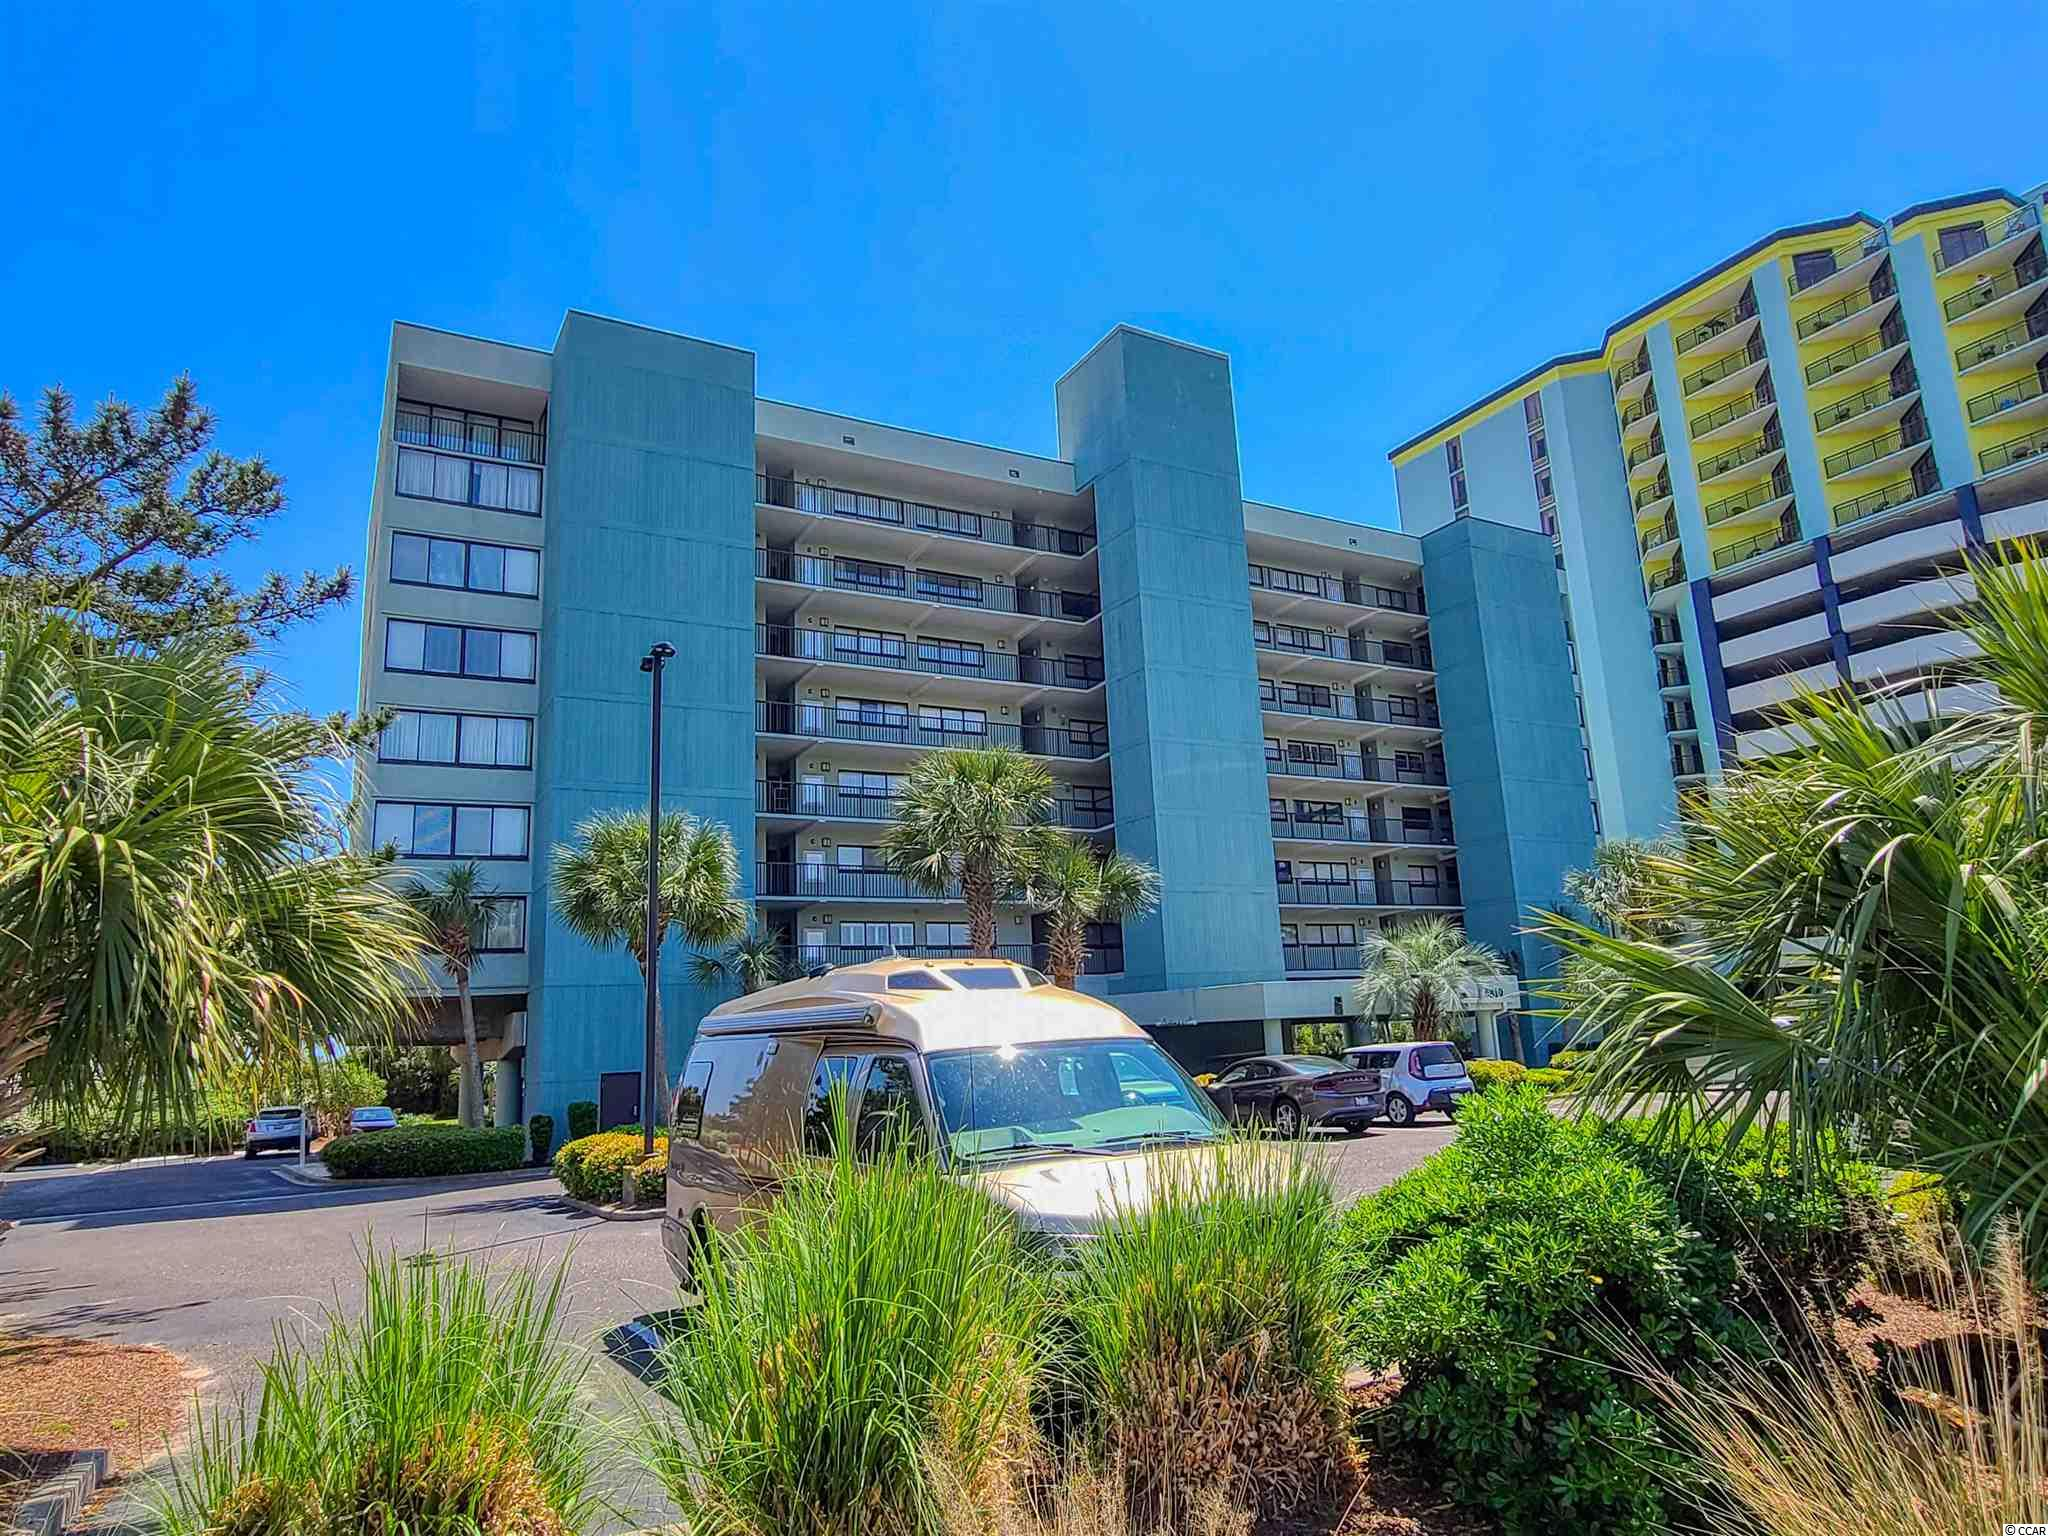 Beautiful views of the blue Atlantic and the coastline from this direct ocean front two bedroom, two bath condo.  Living room and master bedroom are both ocean front, offering relaxing views and sounds of the crashing waves.  Features include granite counters, stainless steel appliances, breakfast bar, tile and carpeting, washer and dryer in unit and lots of storage.  Spacious rooms offers plenty of room for everyone.  Watch the sunrise from the balcony while enjoying your morning coffee.  Just steps to the beach and Carolina Dunes offers indoor and outdoor pools and amenities for the entire family to enjoy.  Great location, just a short drive to dining, shopping, attractions, entertainment, golf, marinas, water sports, piers and everything else the Grand Strand has to offer.  Don't miss this opportunity to own your own piece of paradise!  All measurements and square footages are approximate and not guaranteed.  Buyers are responsible for verification of all information.